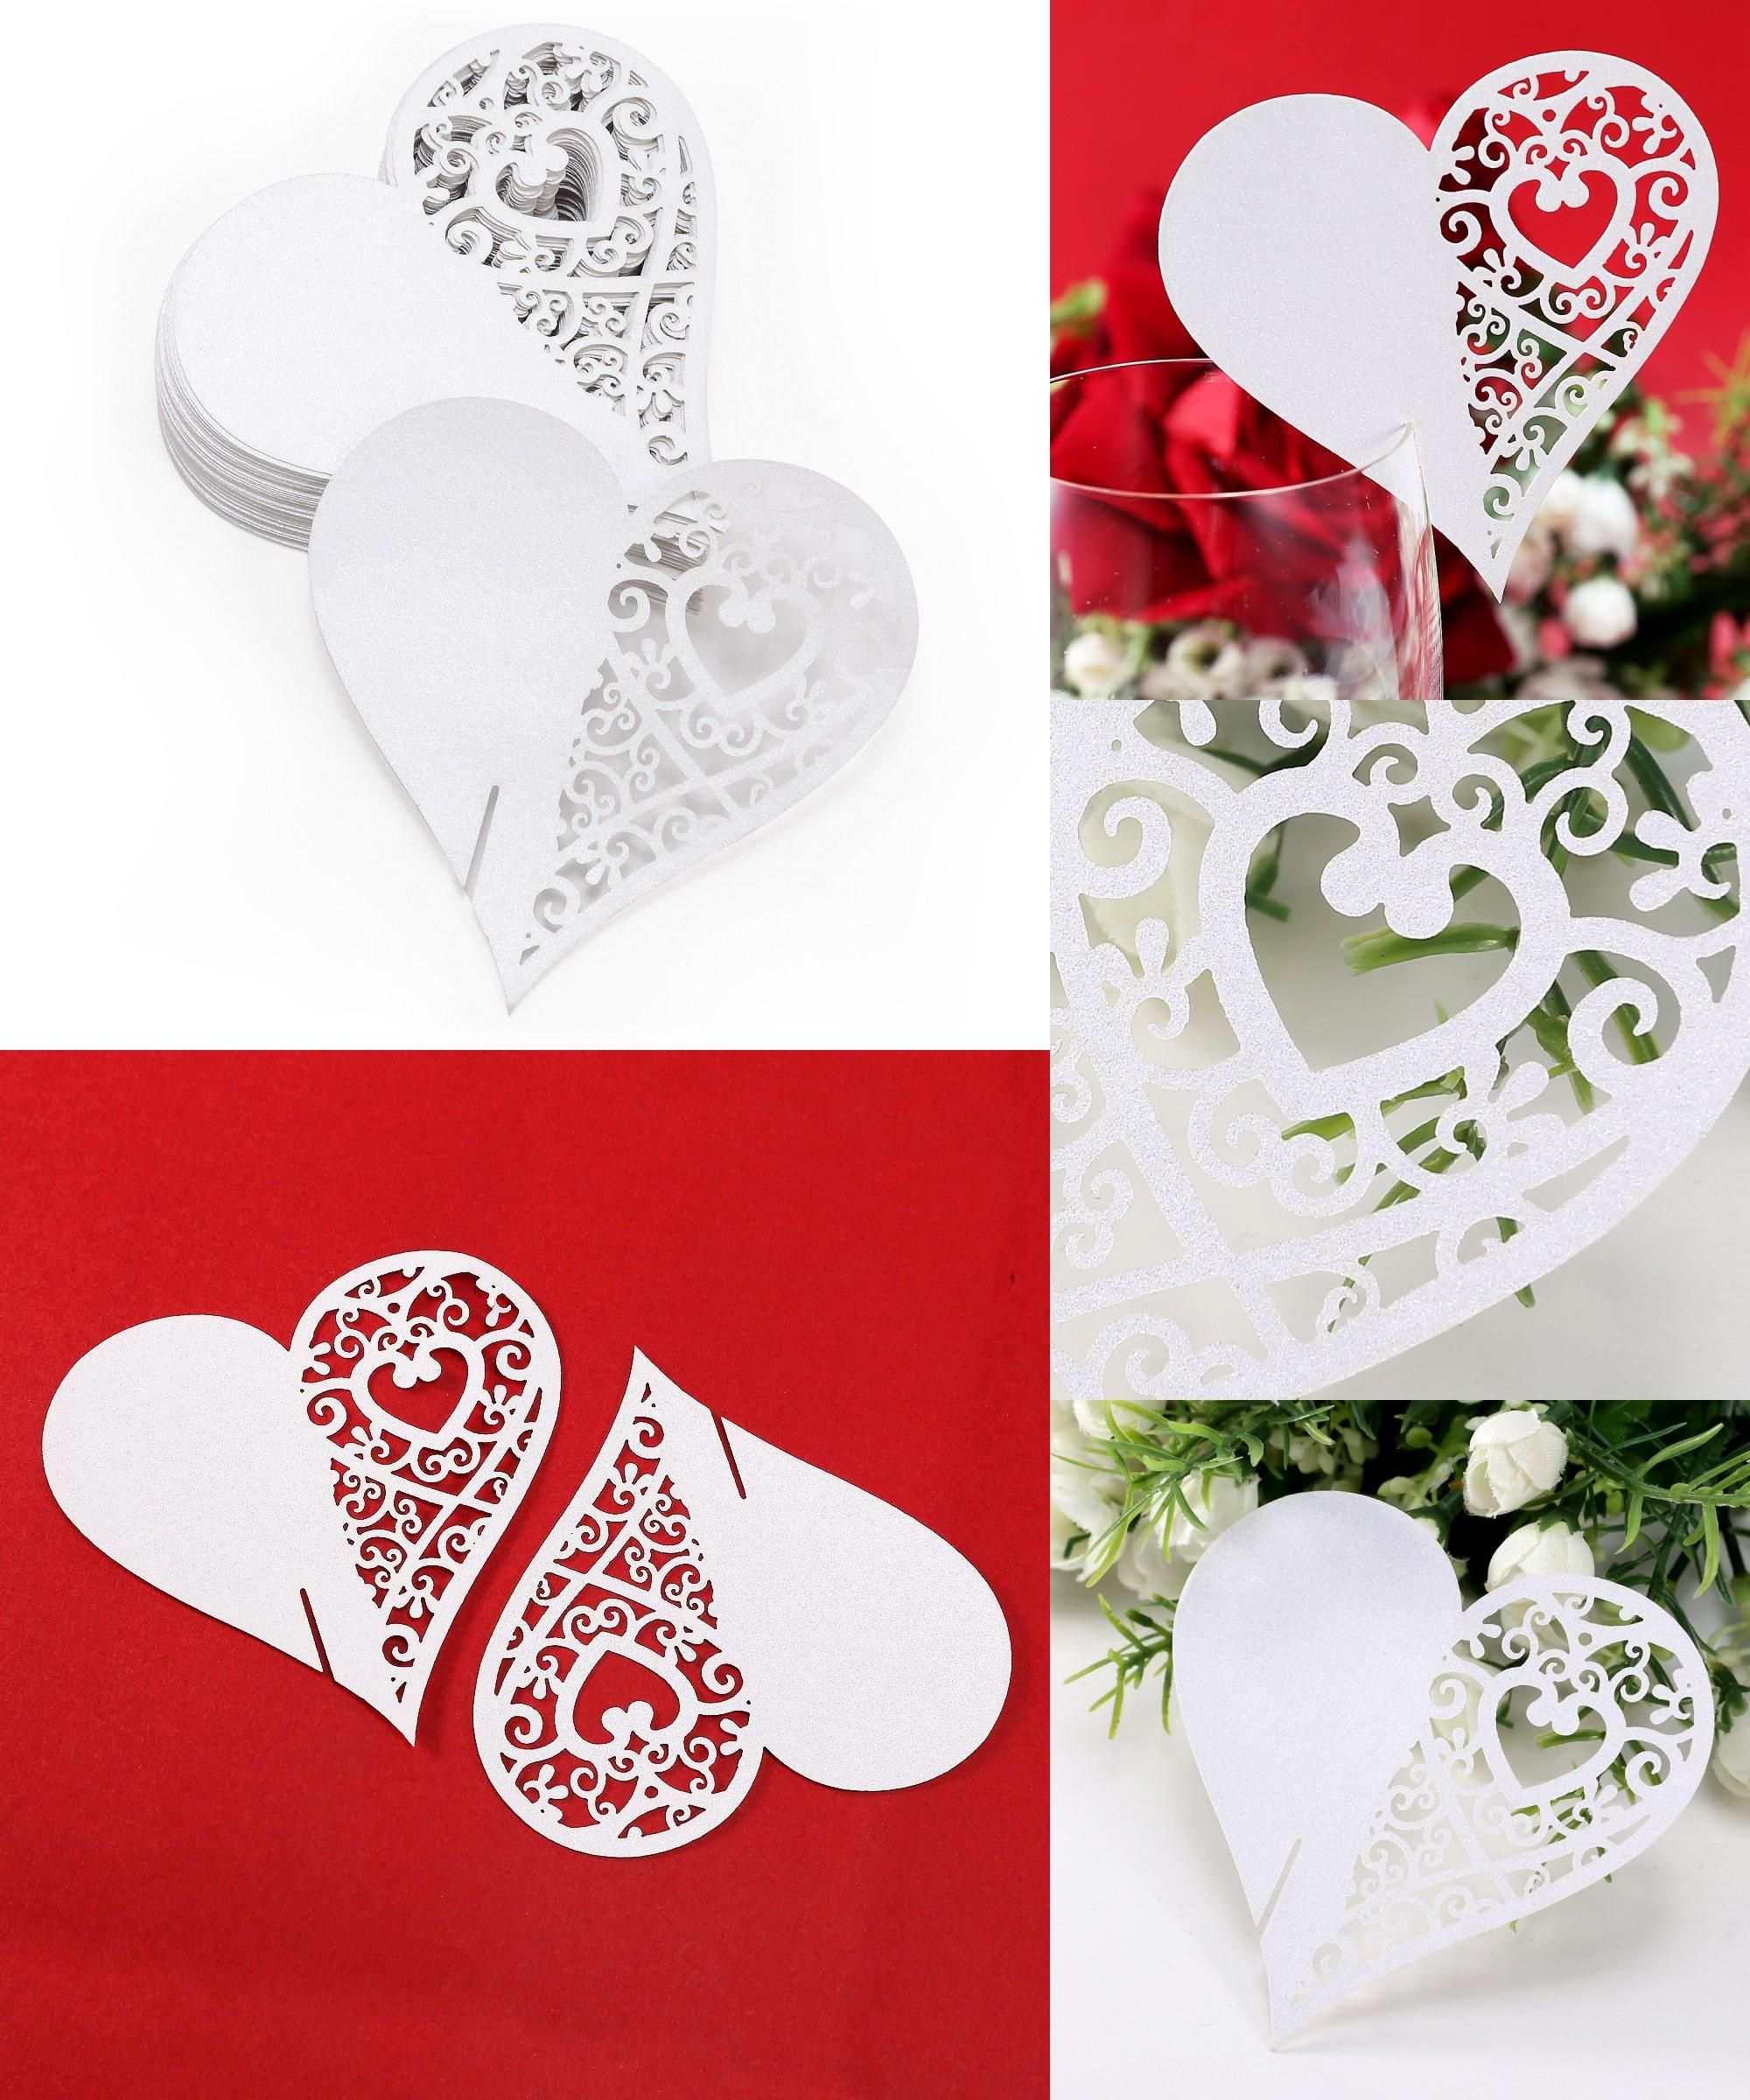 Visit to Buy] UESH-50x White Heart Cup Card Holder Name Place card ...